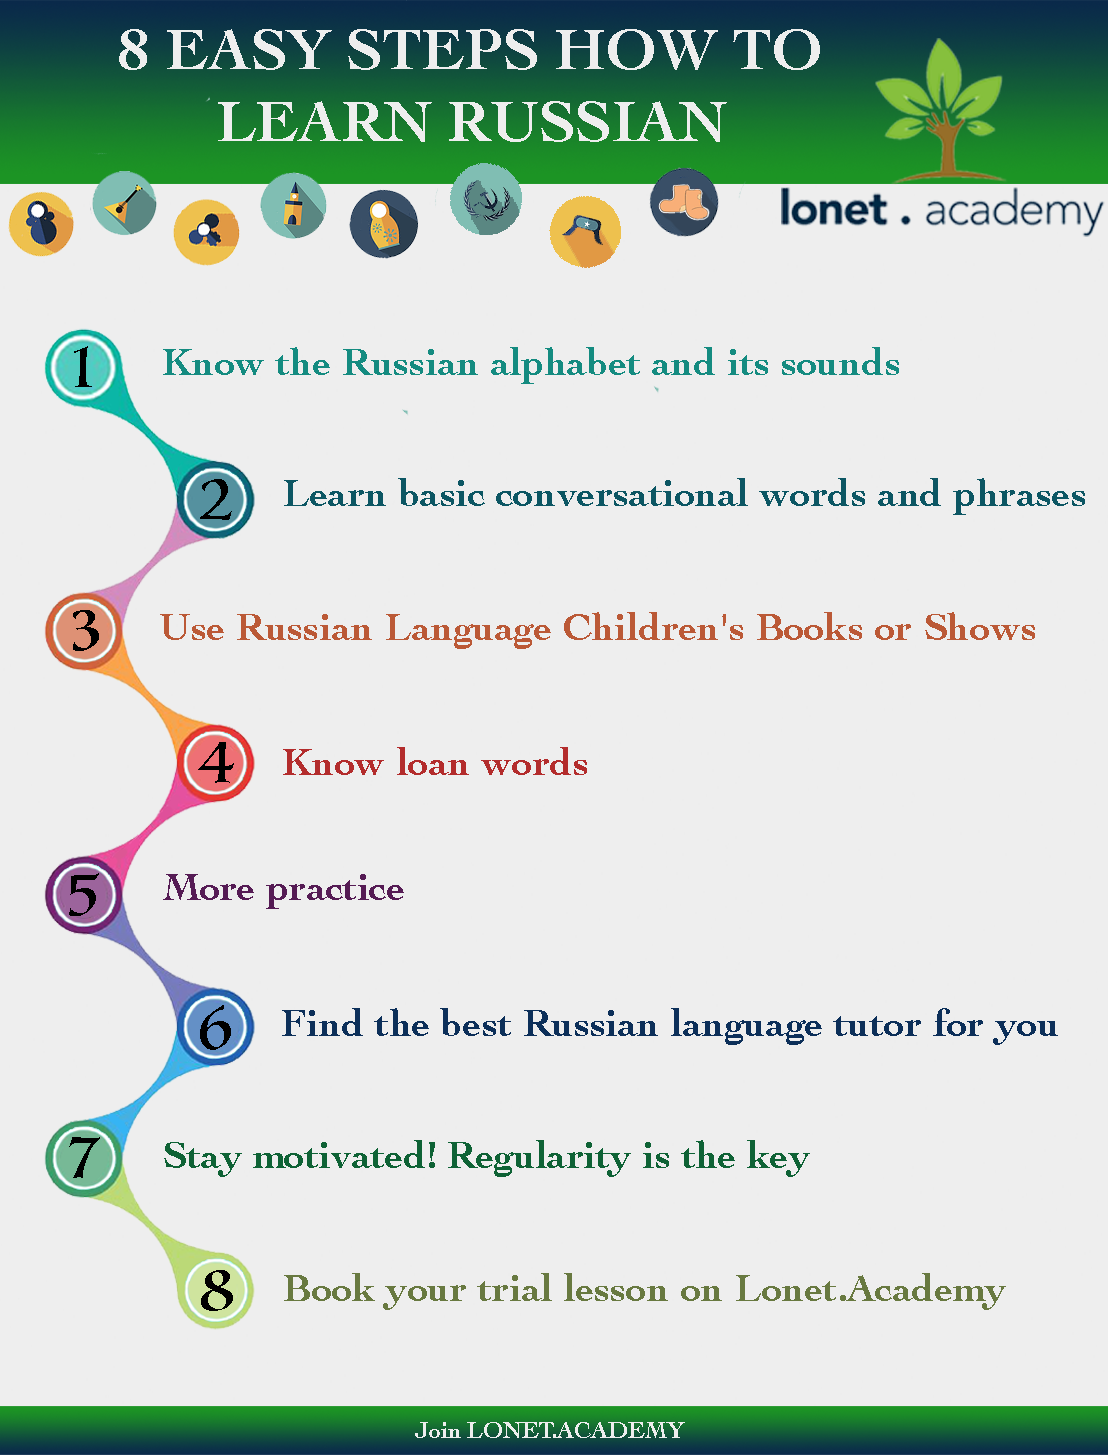 How to learn Russian language fast. 8 easy steps to take in order to learn Russian faster and easier with private  Russian tutors by Skype.